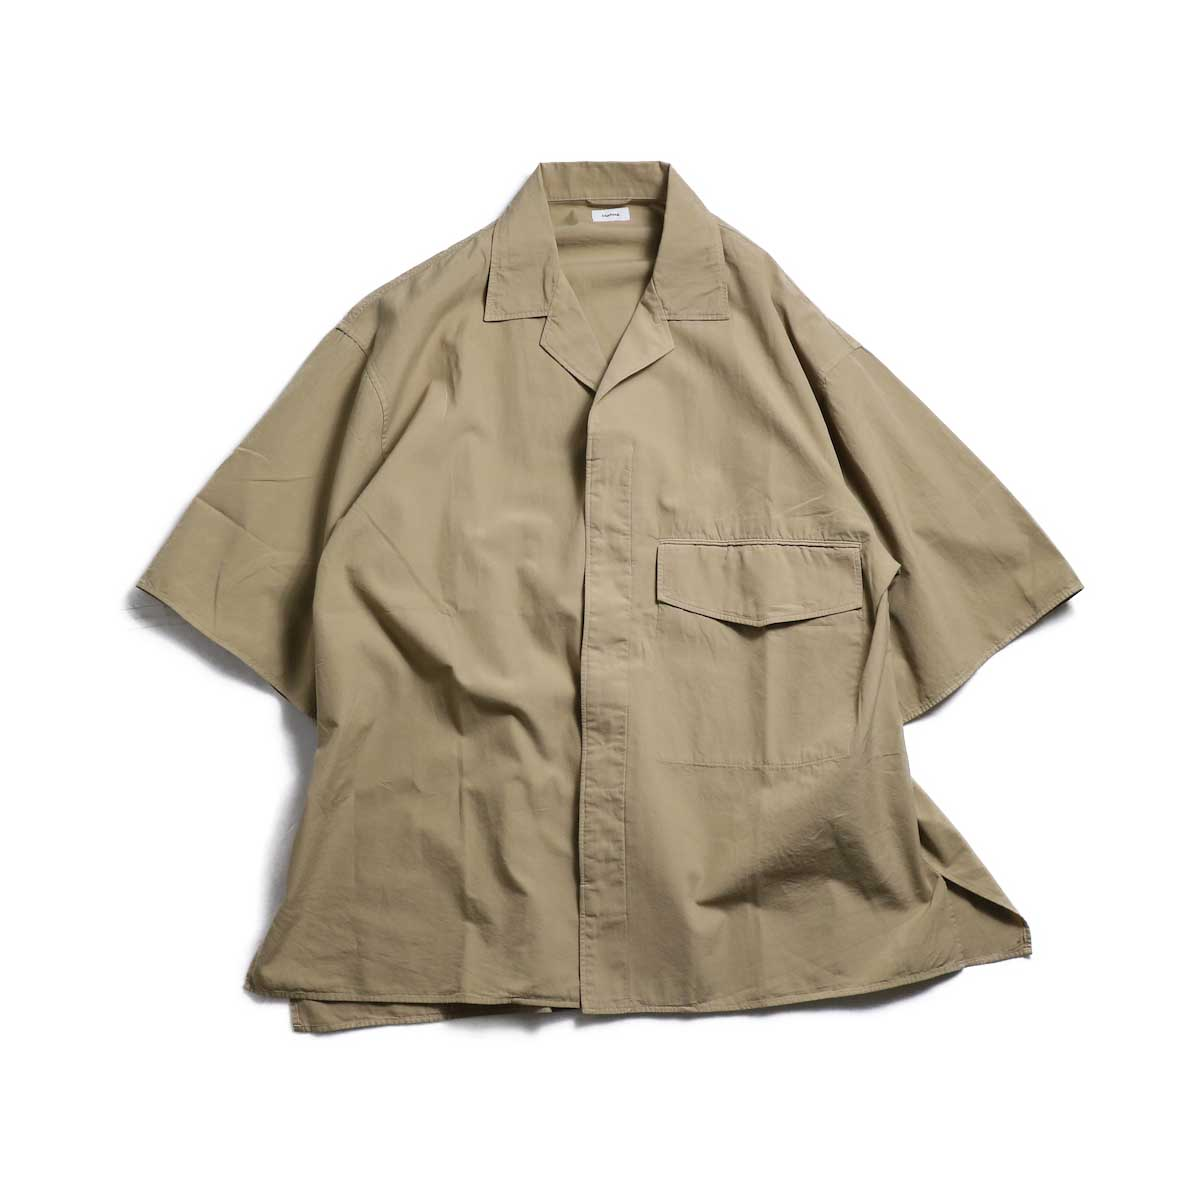 blurhms / Polish Chambray Wide Sleeve Box Shirt -Beige